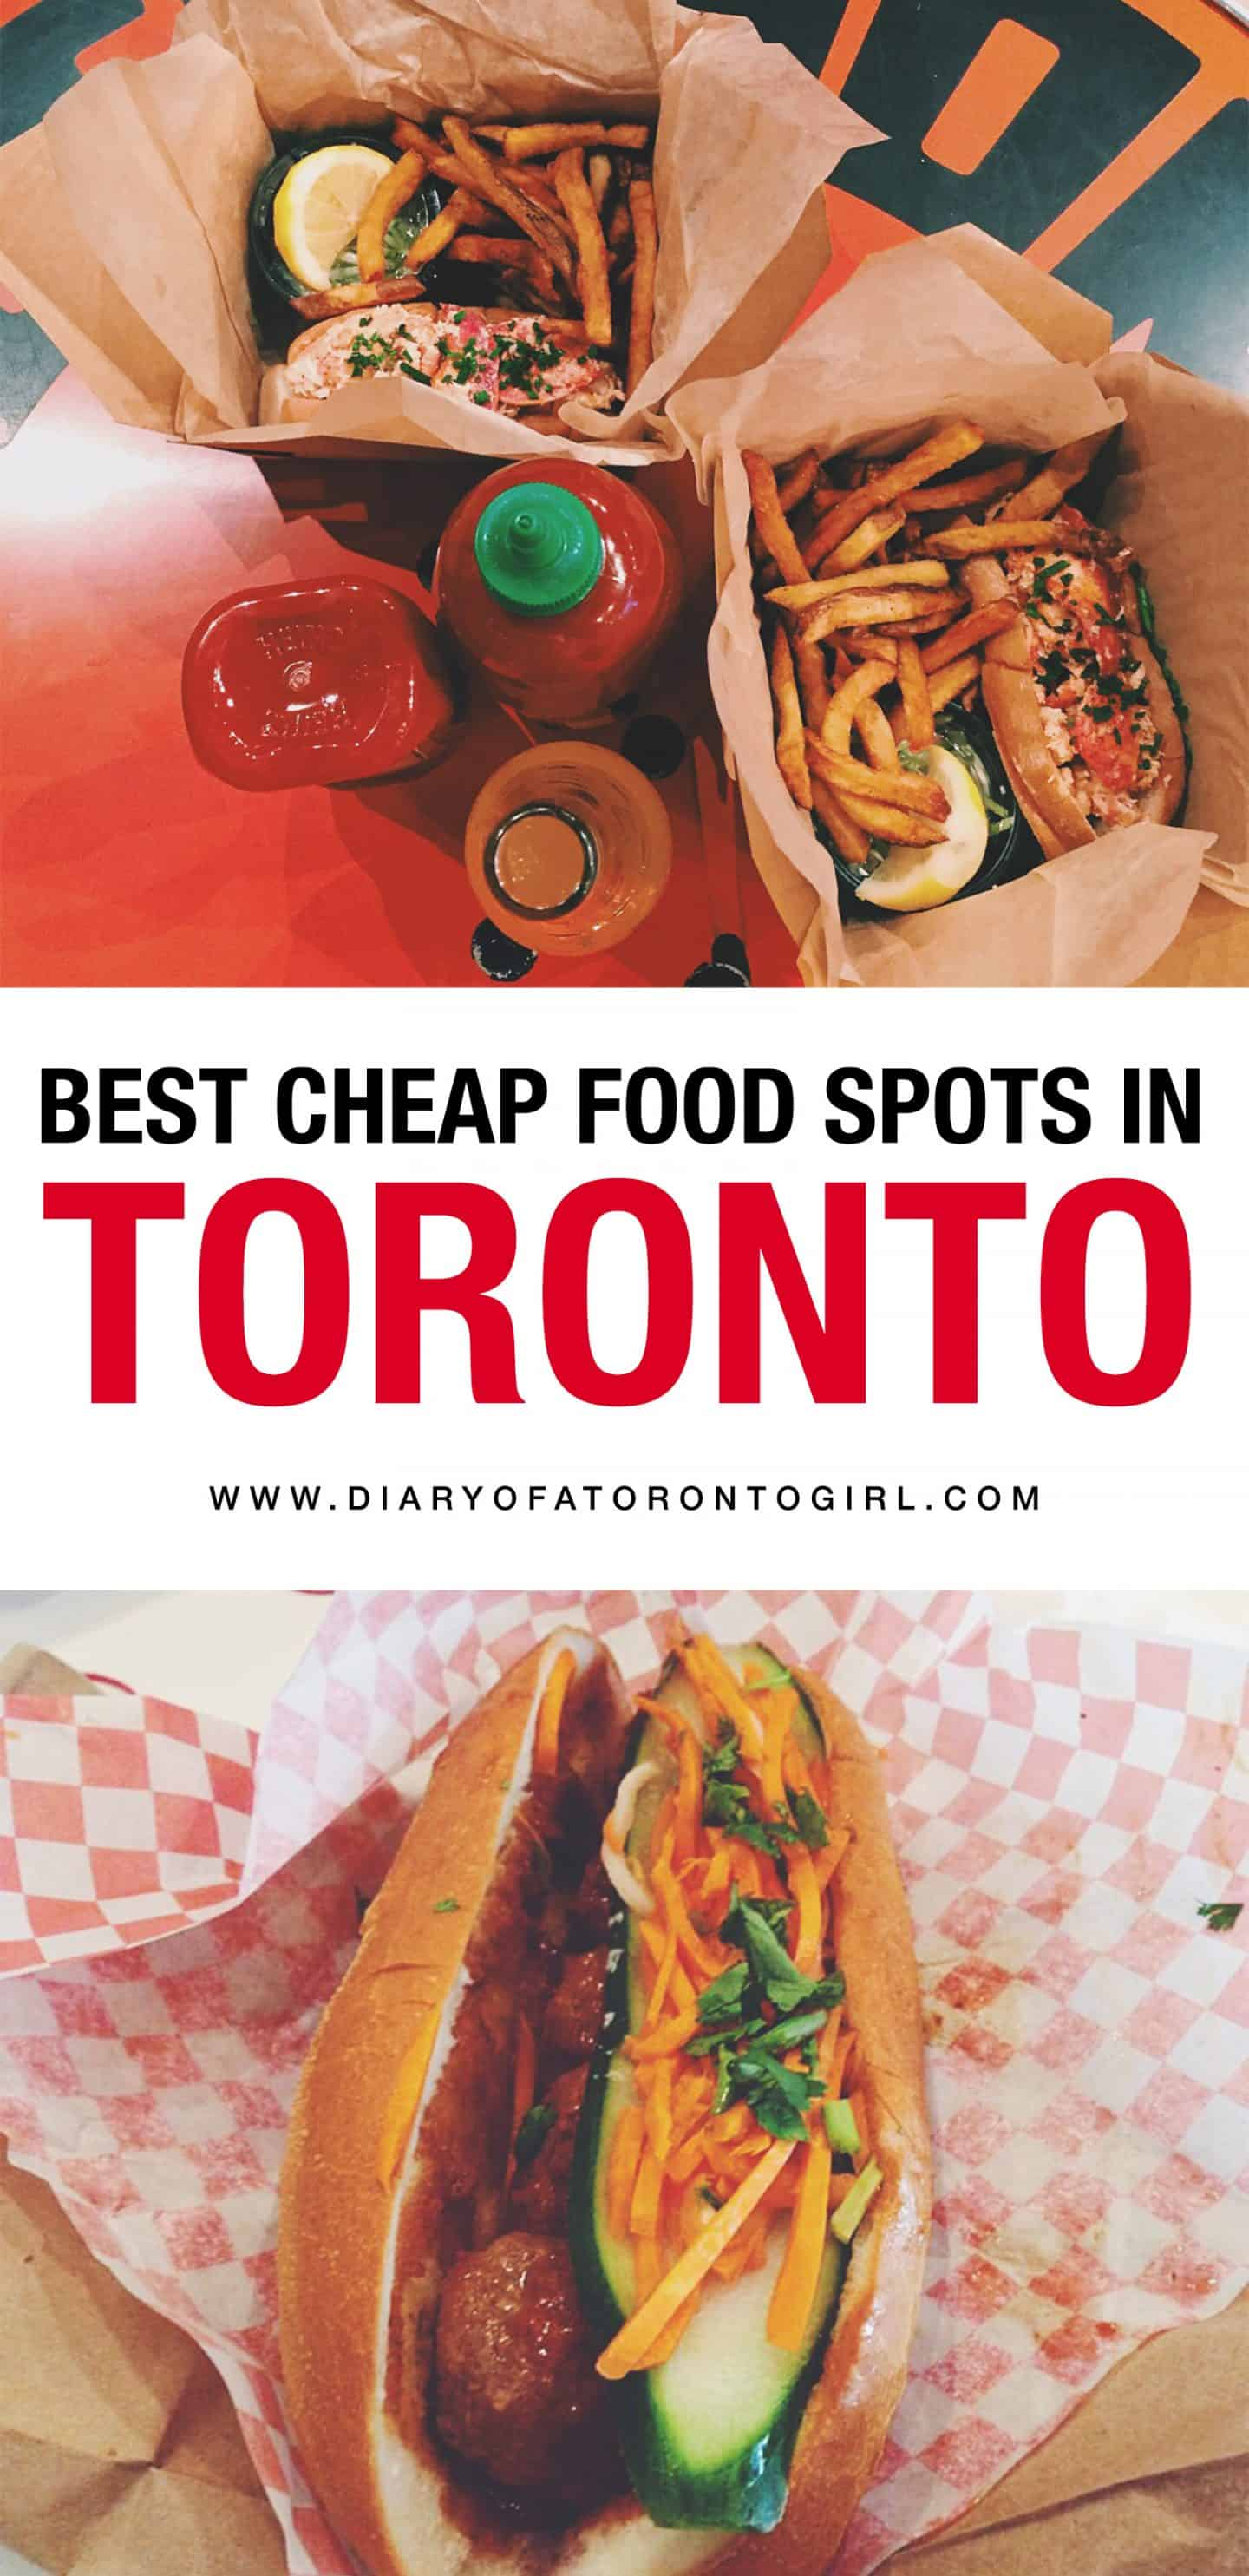 You don't have to break your wallet to find great food in Toronto. Here's where to find the best cheap food spots in the city!